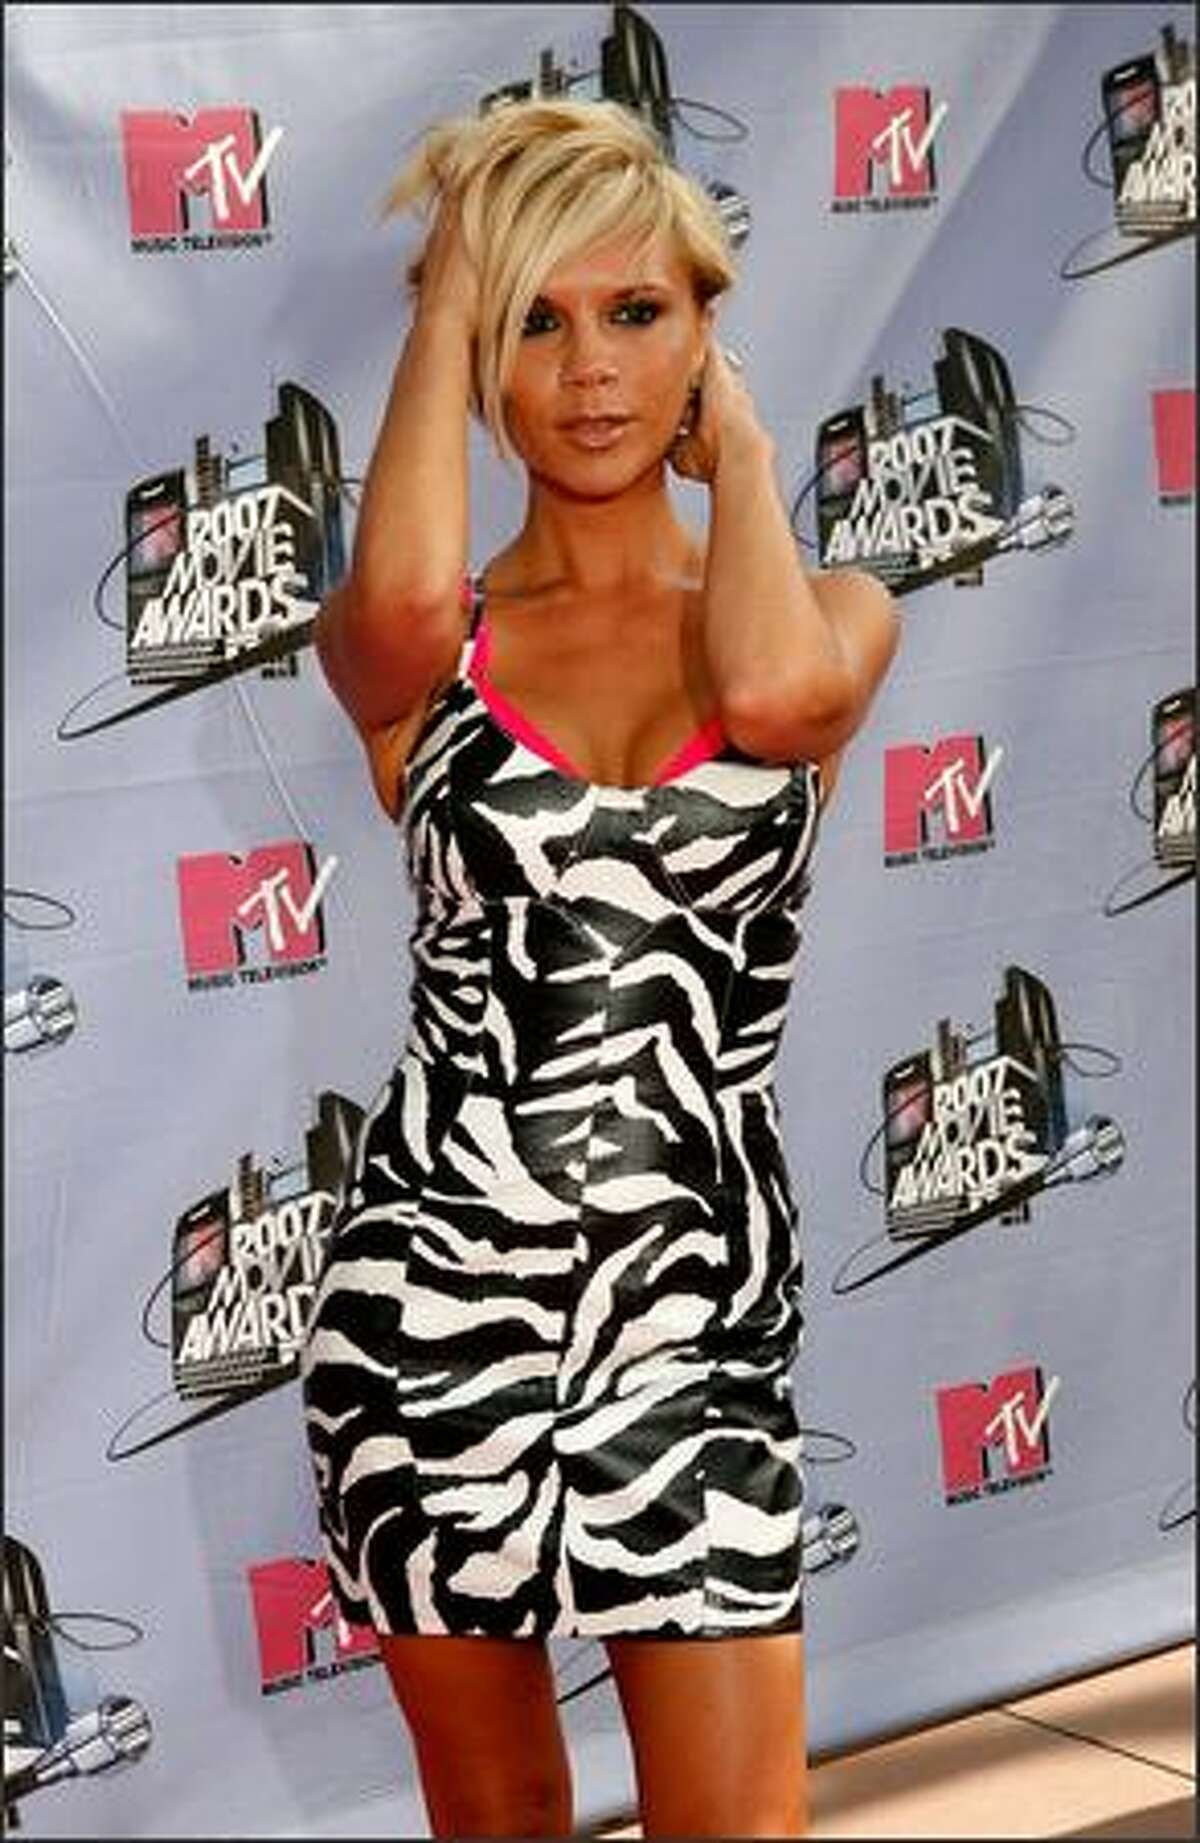 Victoria Beckham arrives to the 2007 MTV Movie Awards held at the Gibson Amphitheatre on June 3, 2007 in Universal City, California. She is on top of Mr. Blackwell's 48th annual worst-dressed list.